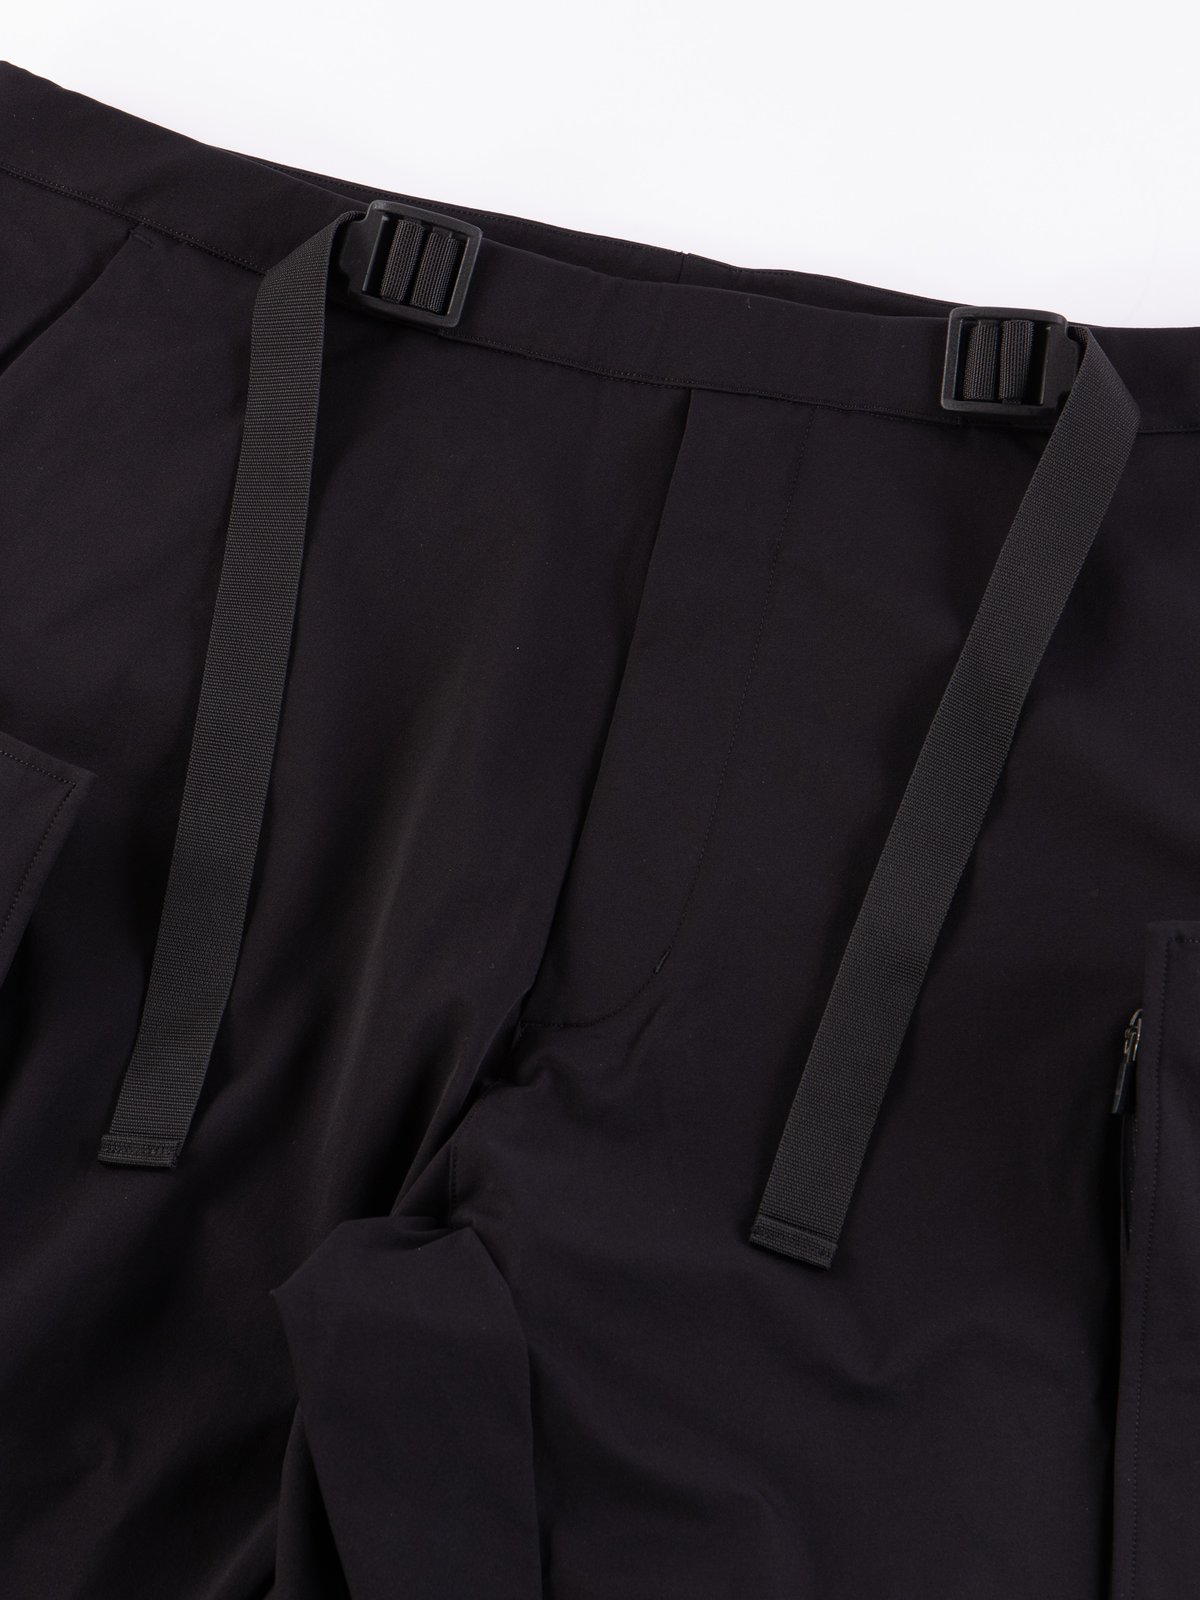 P31A–DS Black Schoeller Dryskin Drawcord Cargo Trouser - Image 3